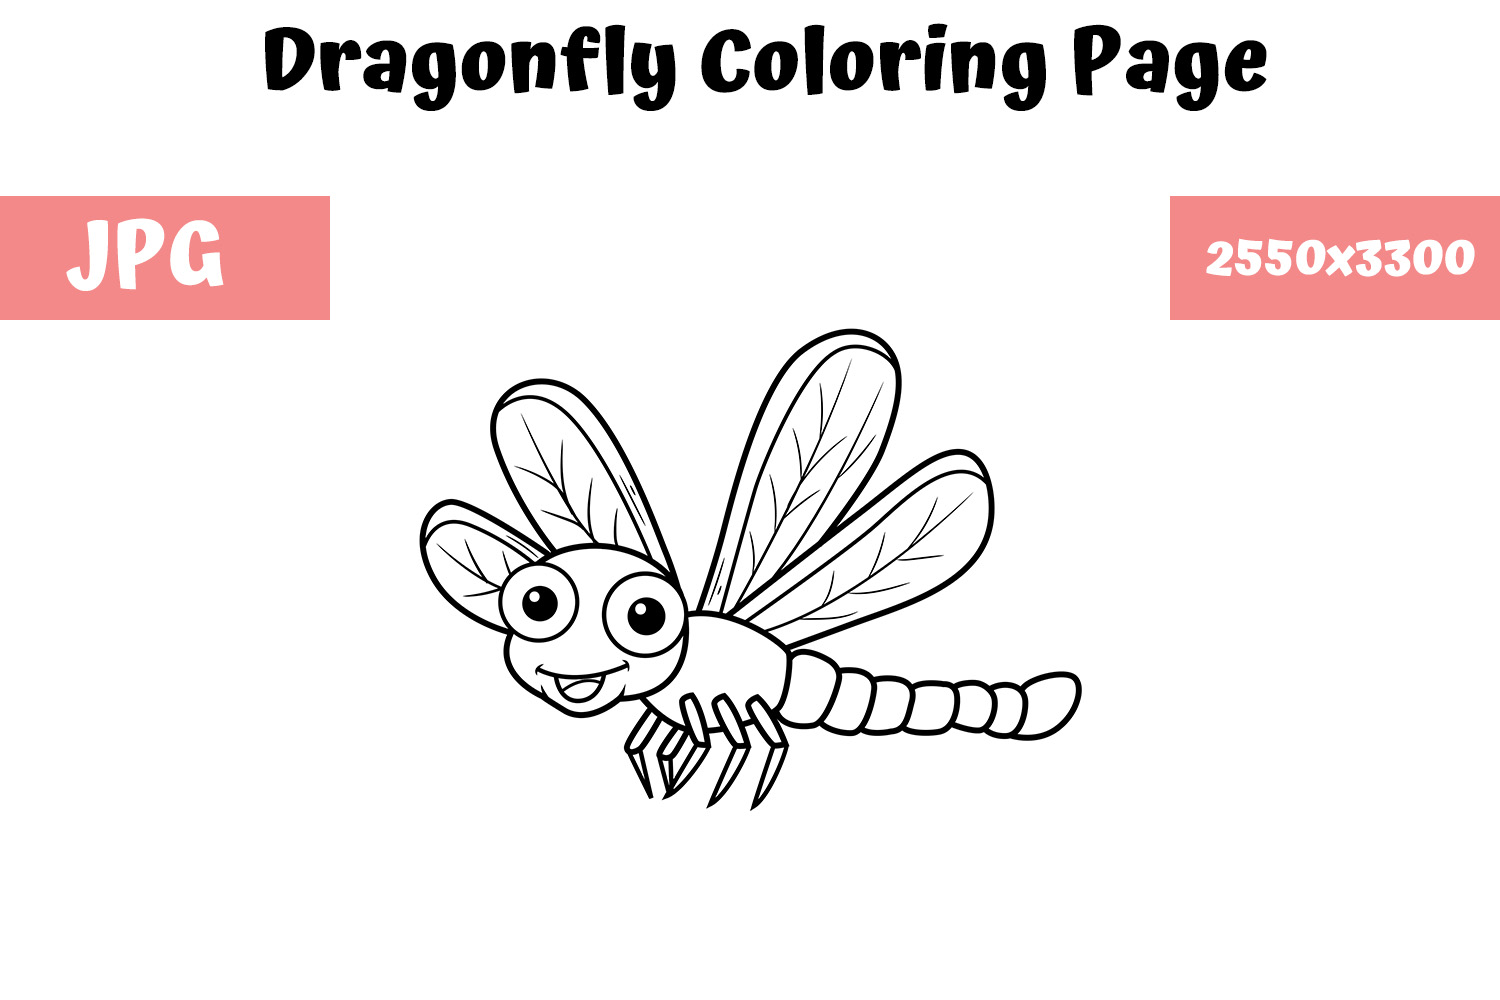 Dragonfly Coloring Pages - Kiddo | 1000x1500